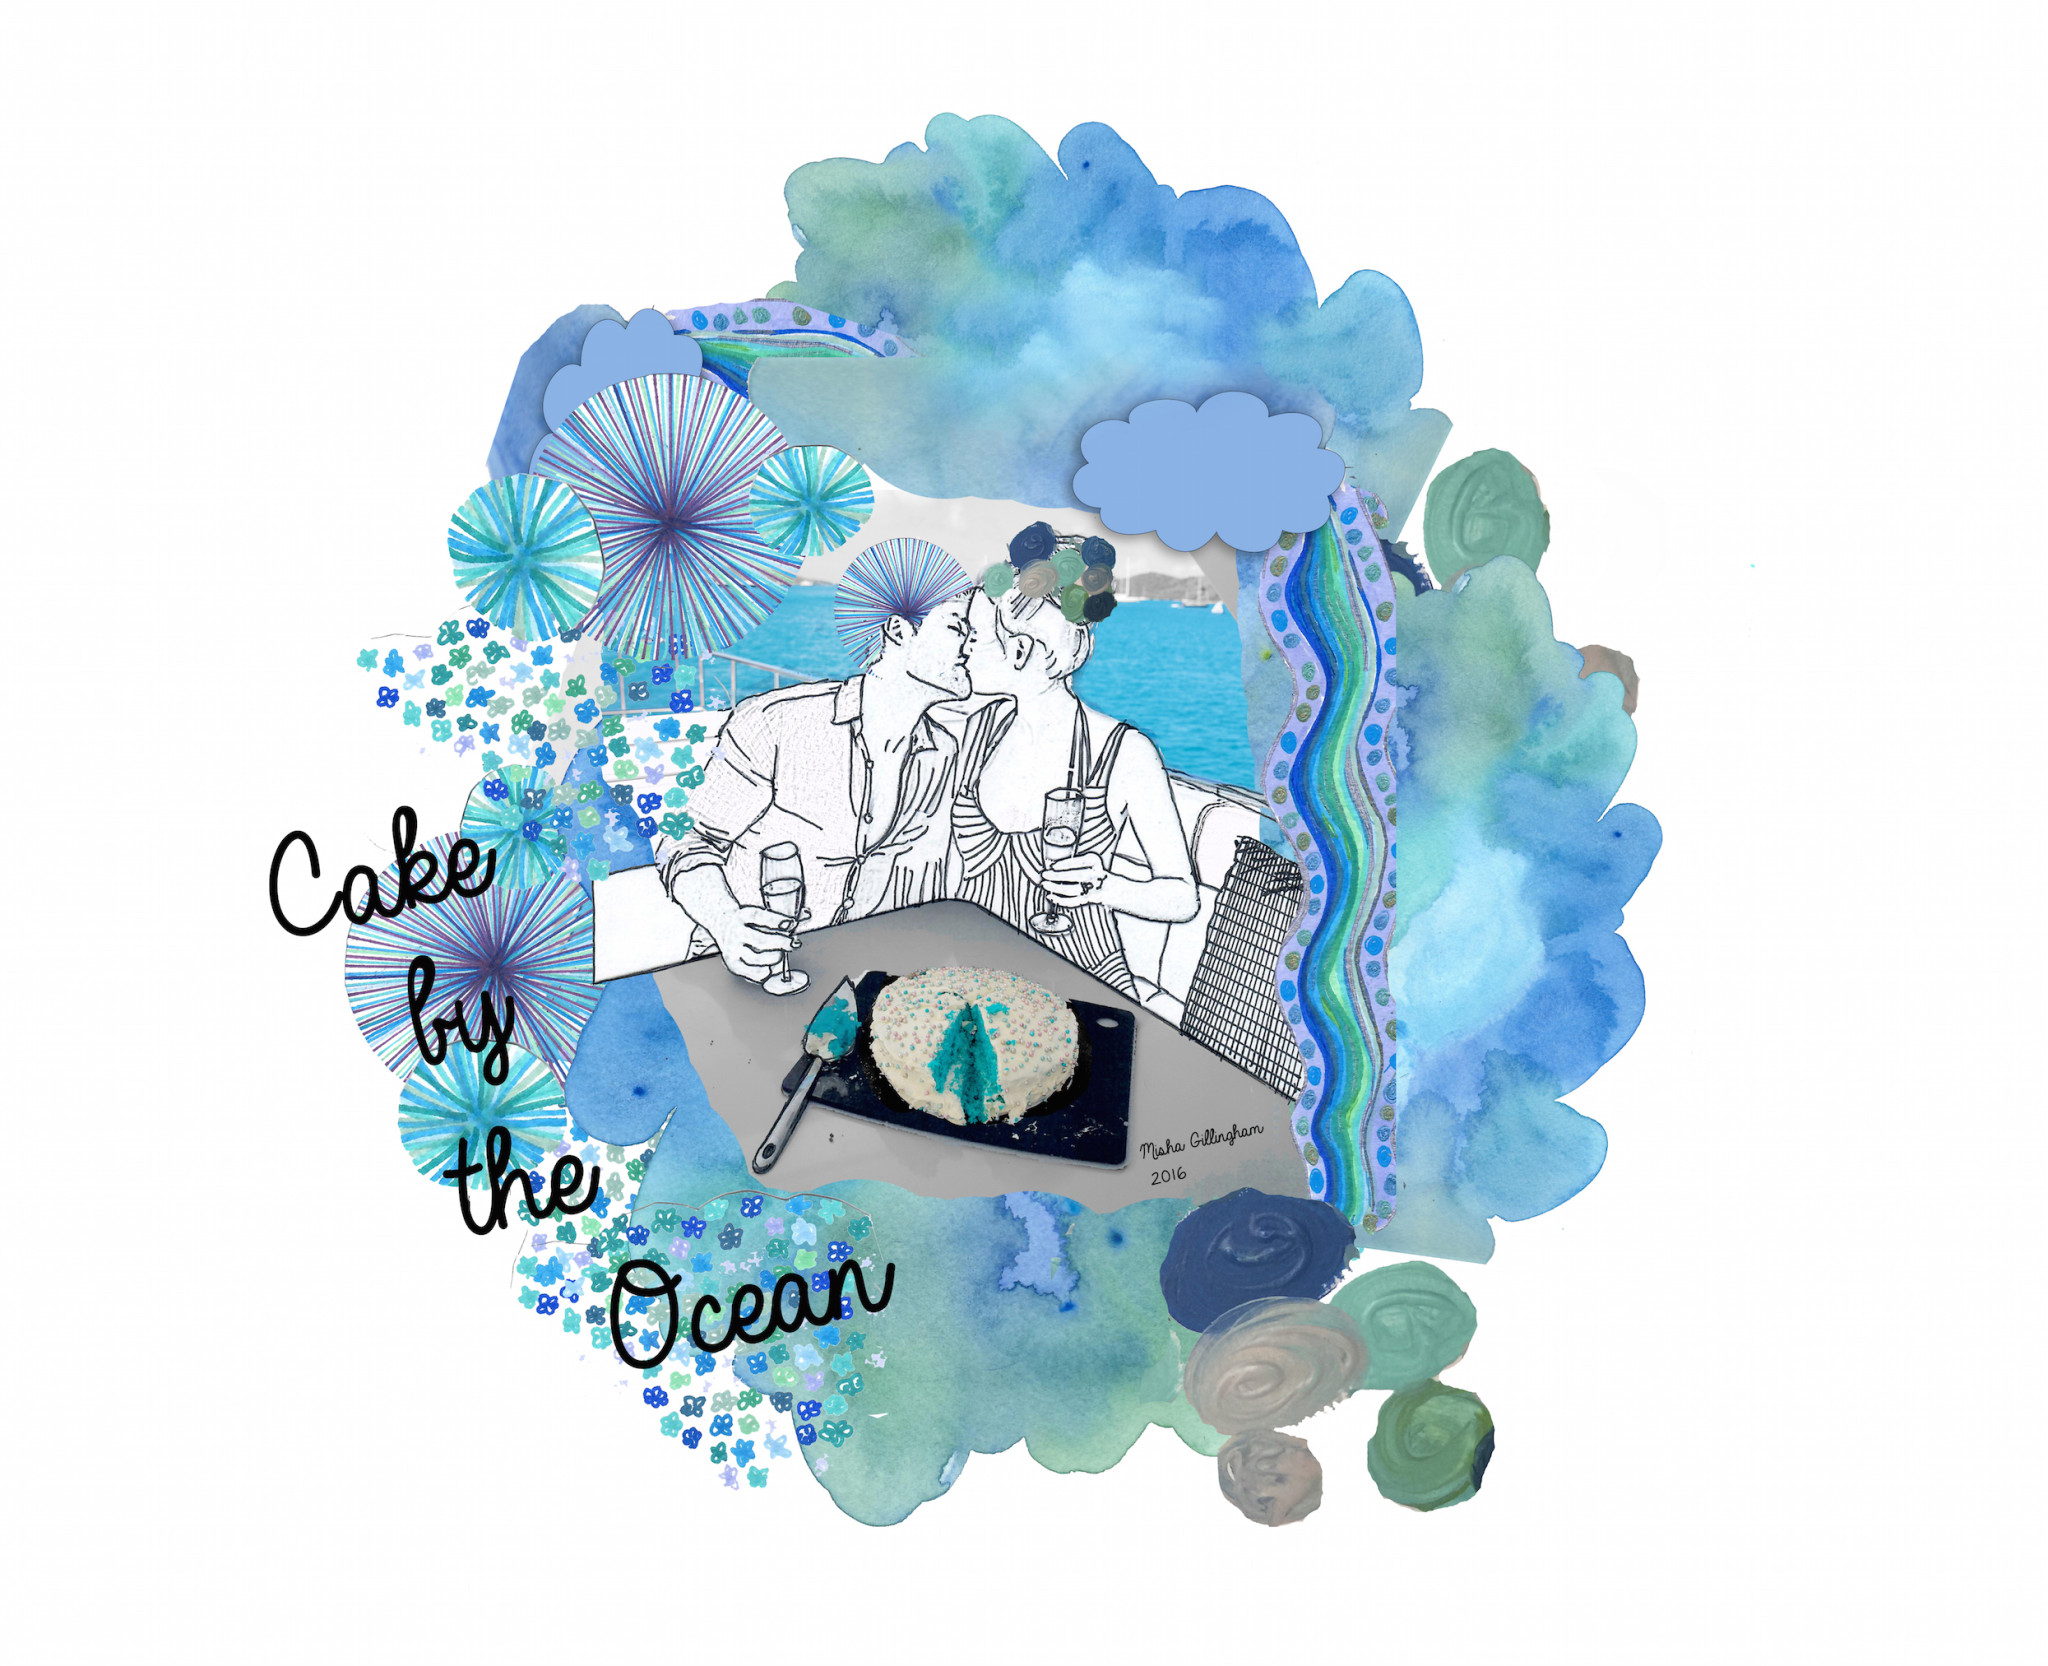 Cake By the Ocean Visual Journal